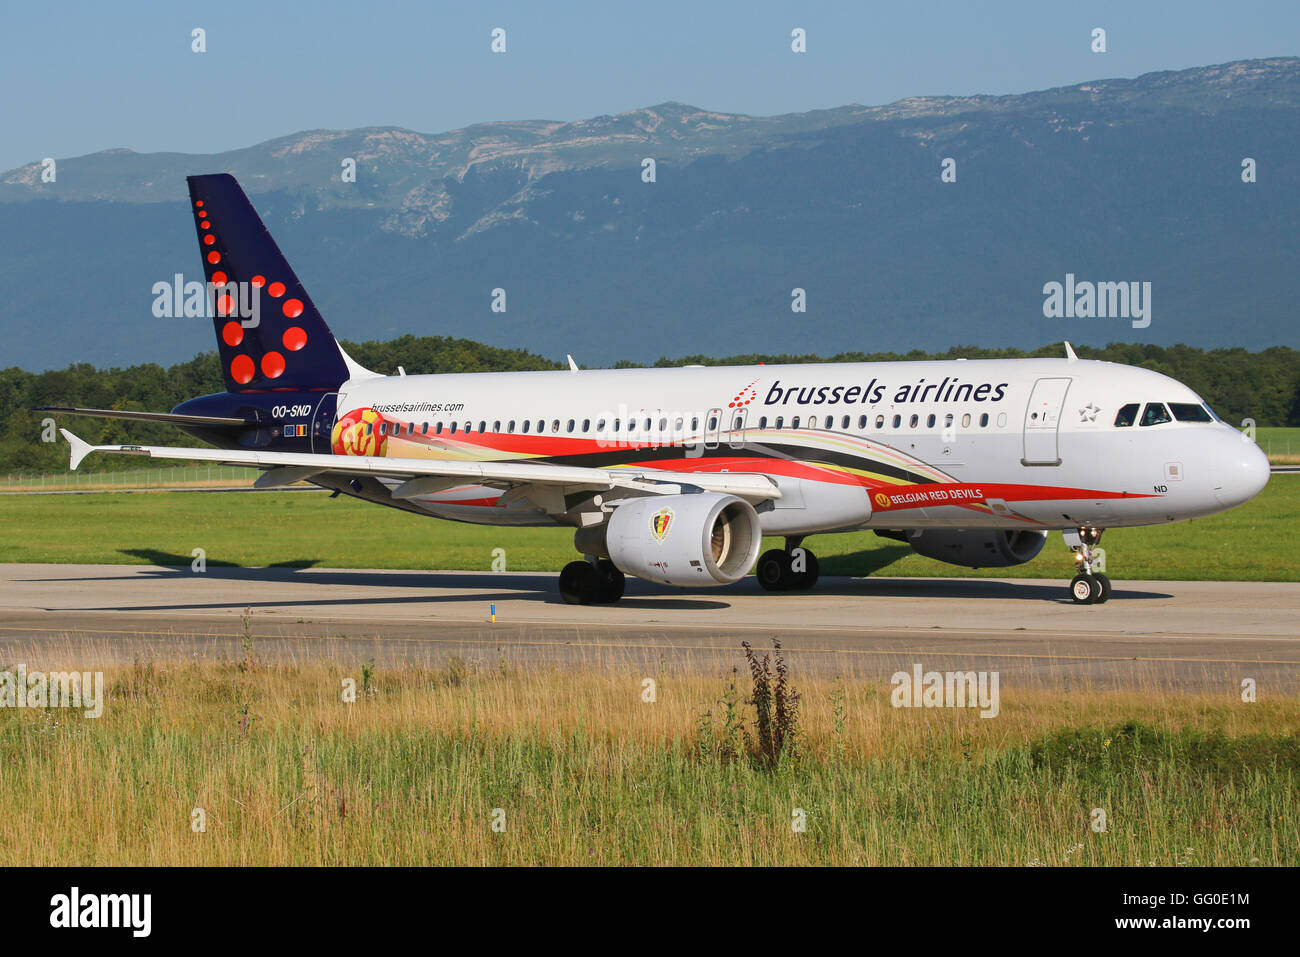 Genf/Switzerland August 23, 2015: A320 from Brussel Airways with 'Belgian Red Devils' colours at Genf Airport. - Stock Image